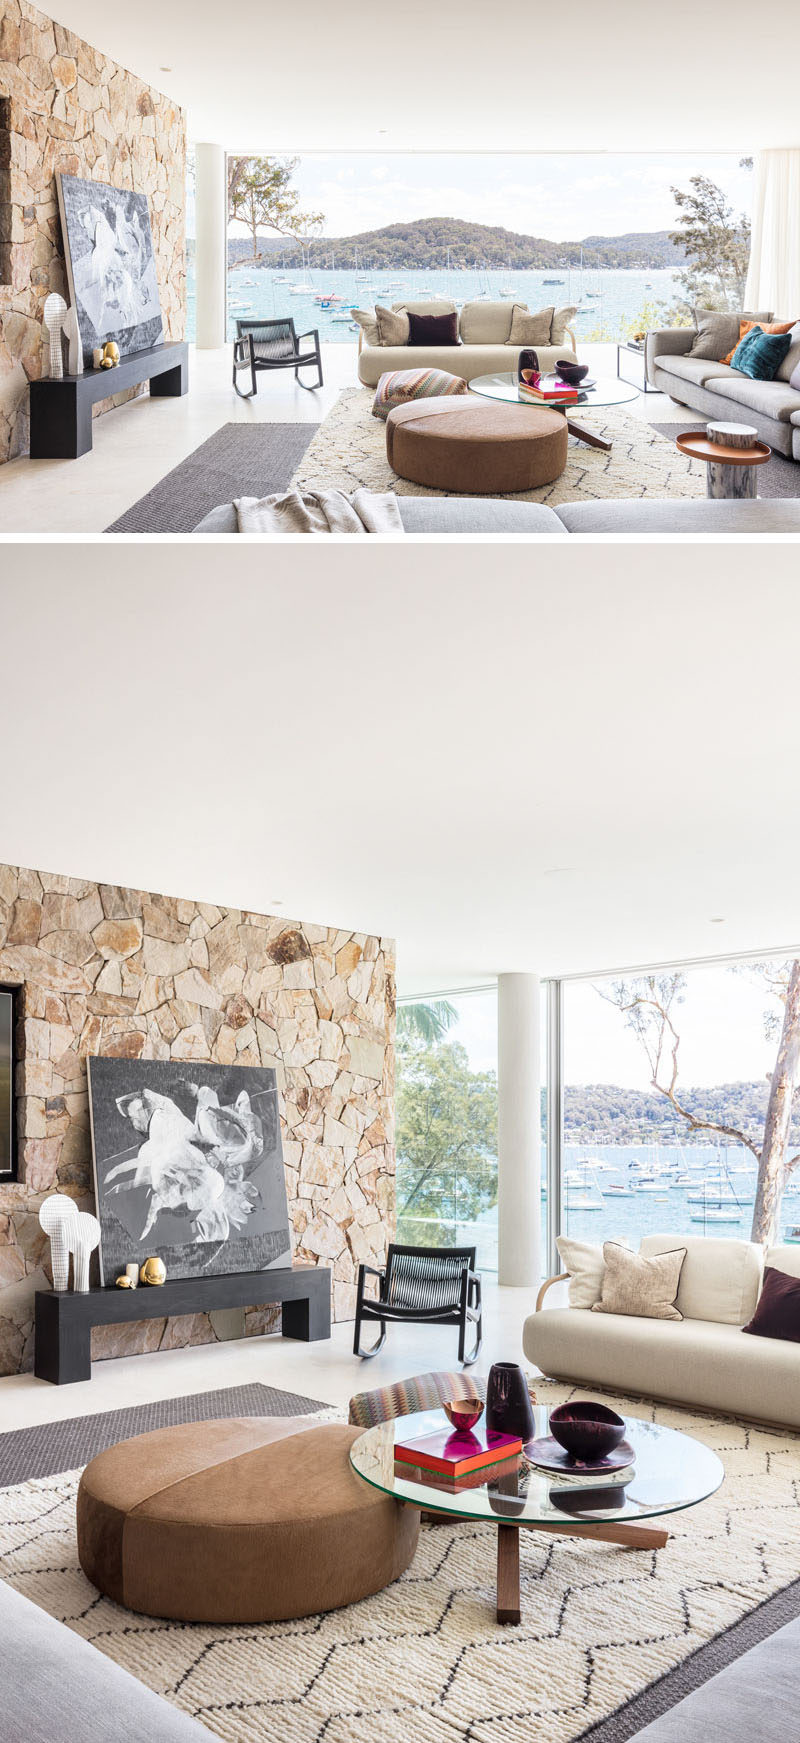 Throughout this modern waterfront house, sandstone-coloured stack stone has been used to create feature walls, while 'invisible' floor to ceiling Vitrocsa glass allows for uninterrupted views. #SandstoneWalls #Windows #LivingRoom